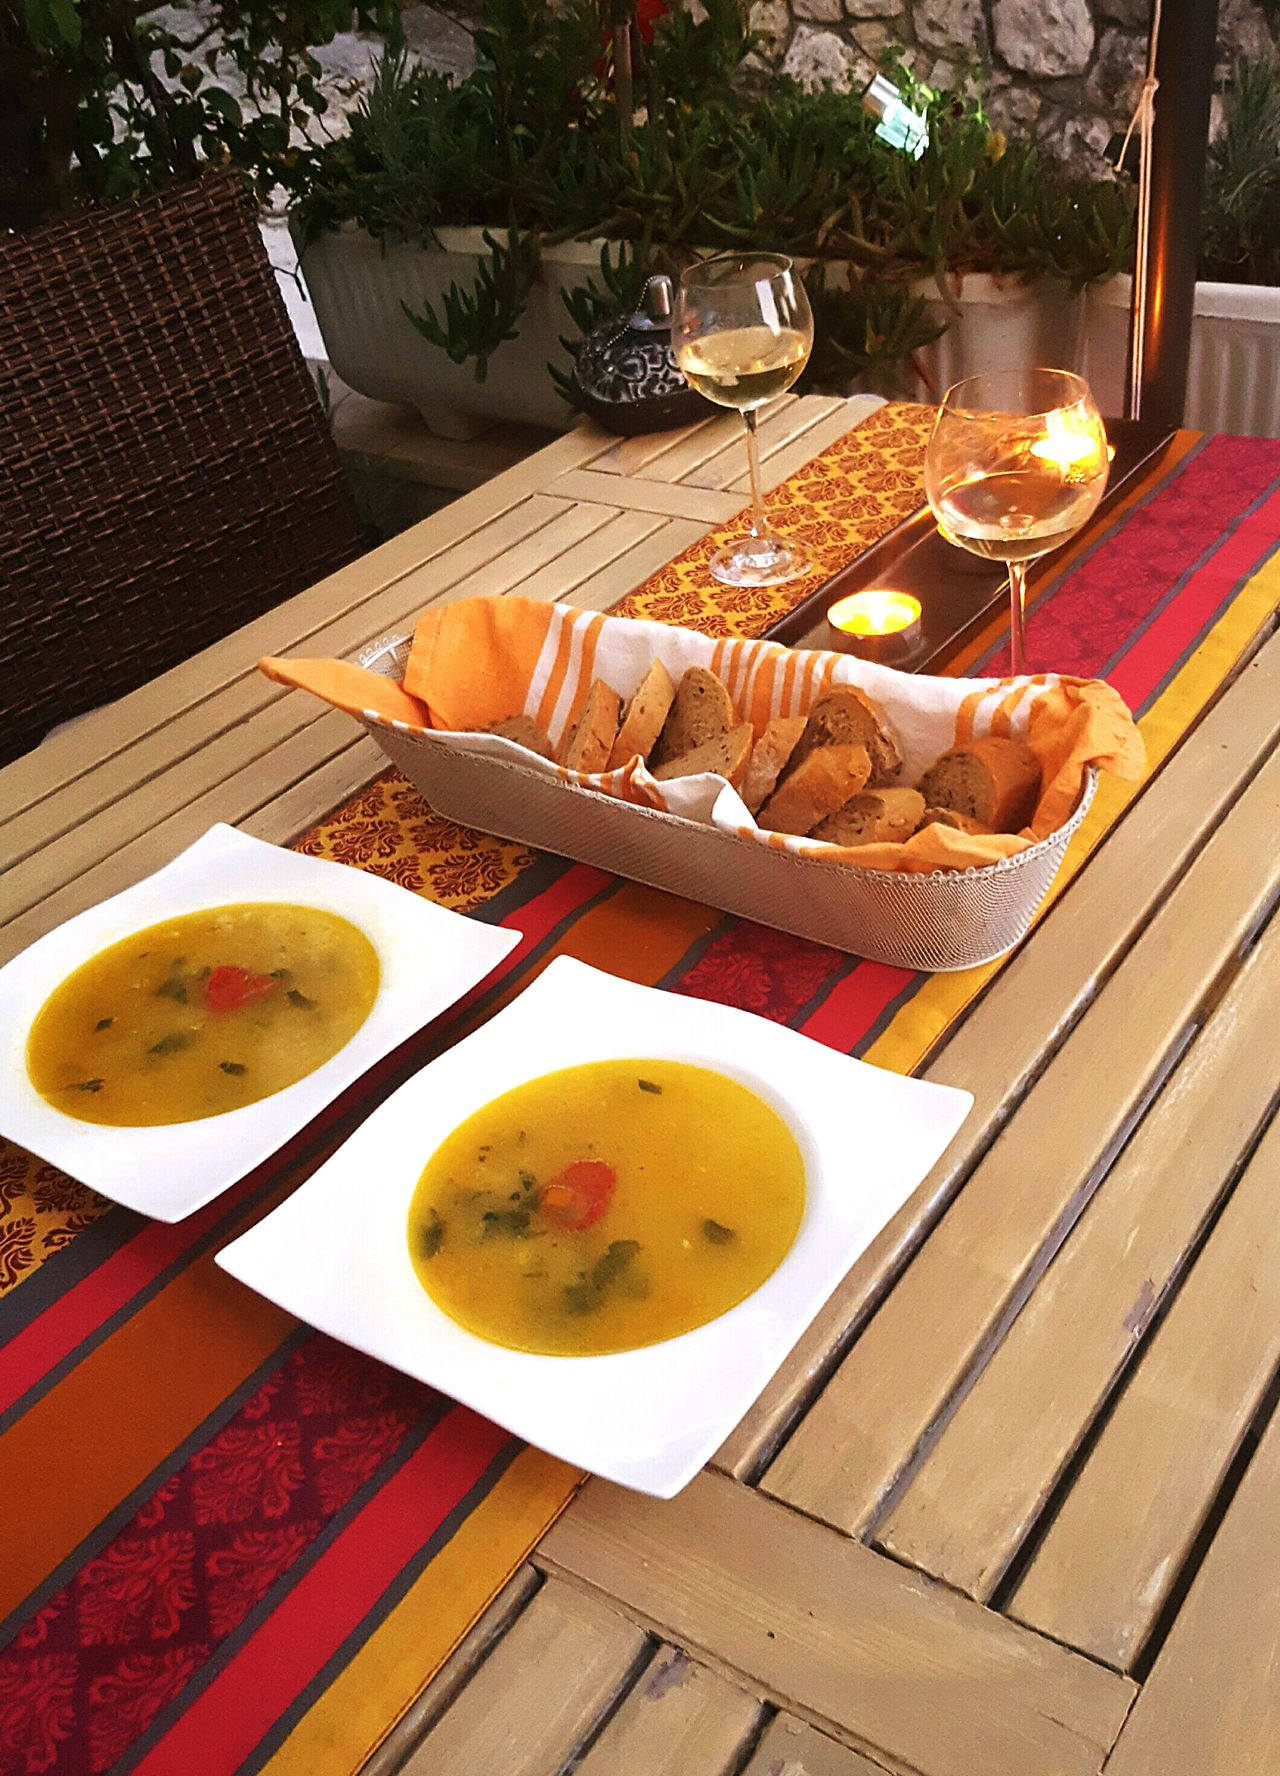 The OO Mission Homemade Fish Soup Delicious Dinner Riblja Juha Alfresco Eating Alfresco Dining Sunshine Food Dalmation Dining Dalmatia Croatia Colourful Croatia creative croatia Delicious Dalmatia Colours Of Life Beautifully Organized Symmetry Symmetrical Outdoors